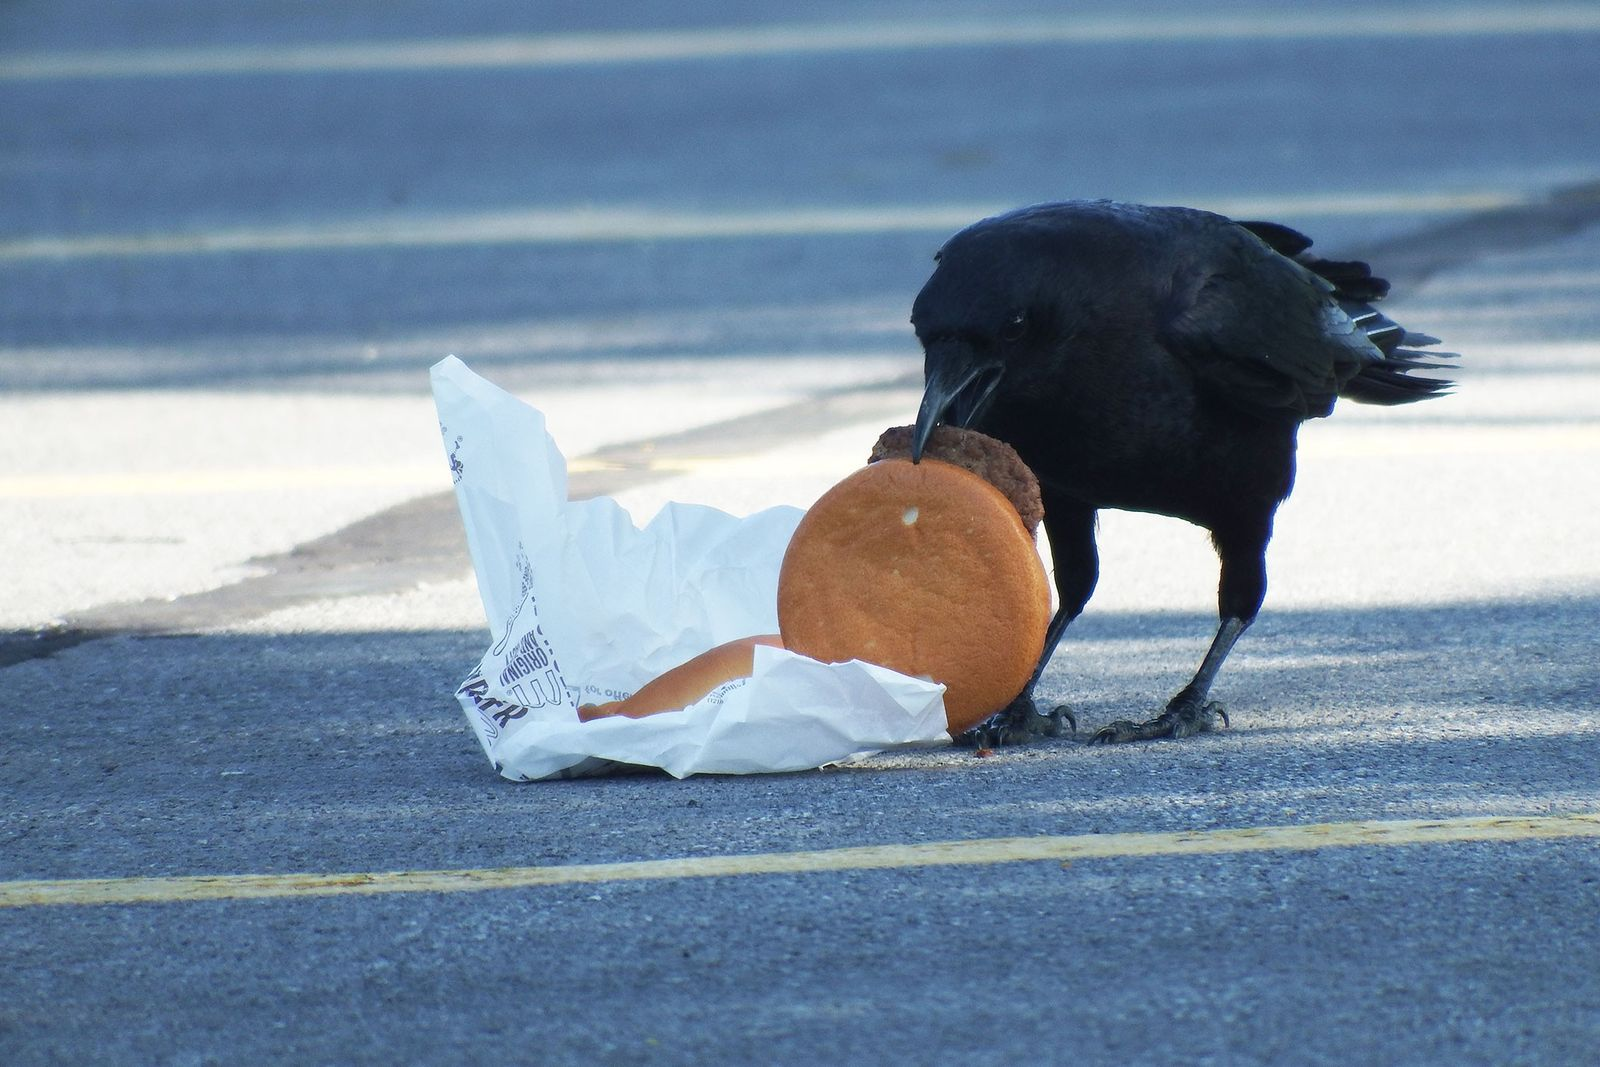 Crows love cheeseburgers. And now they're getting high cholesterol